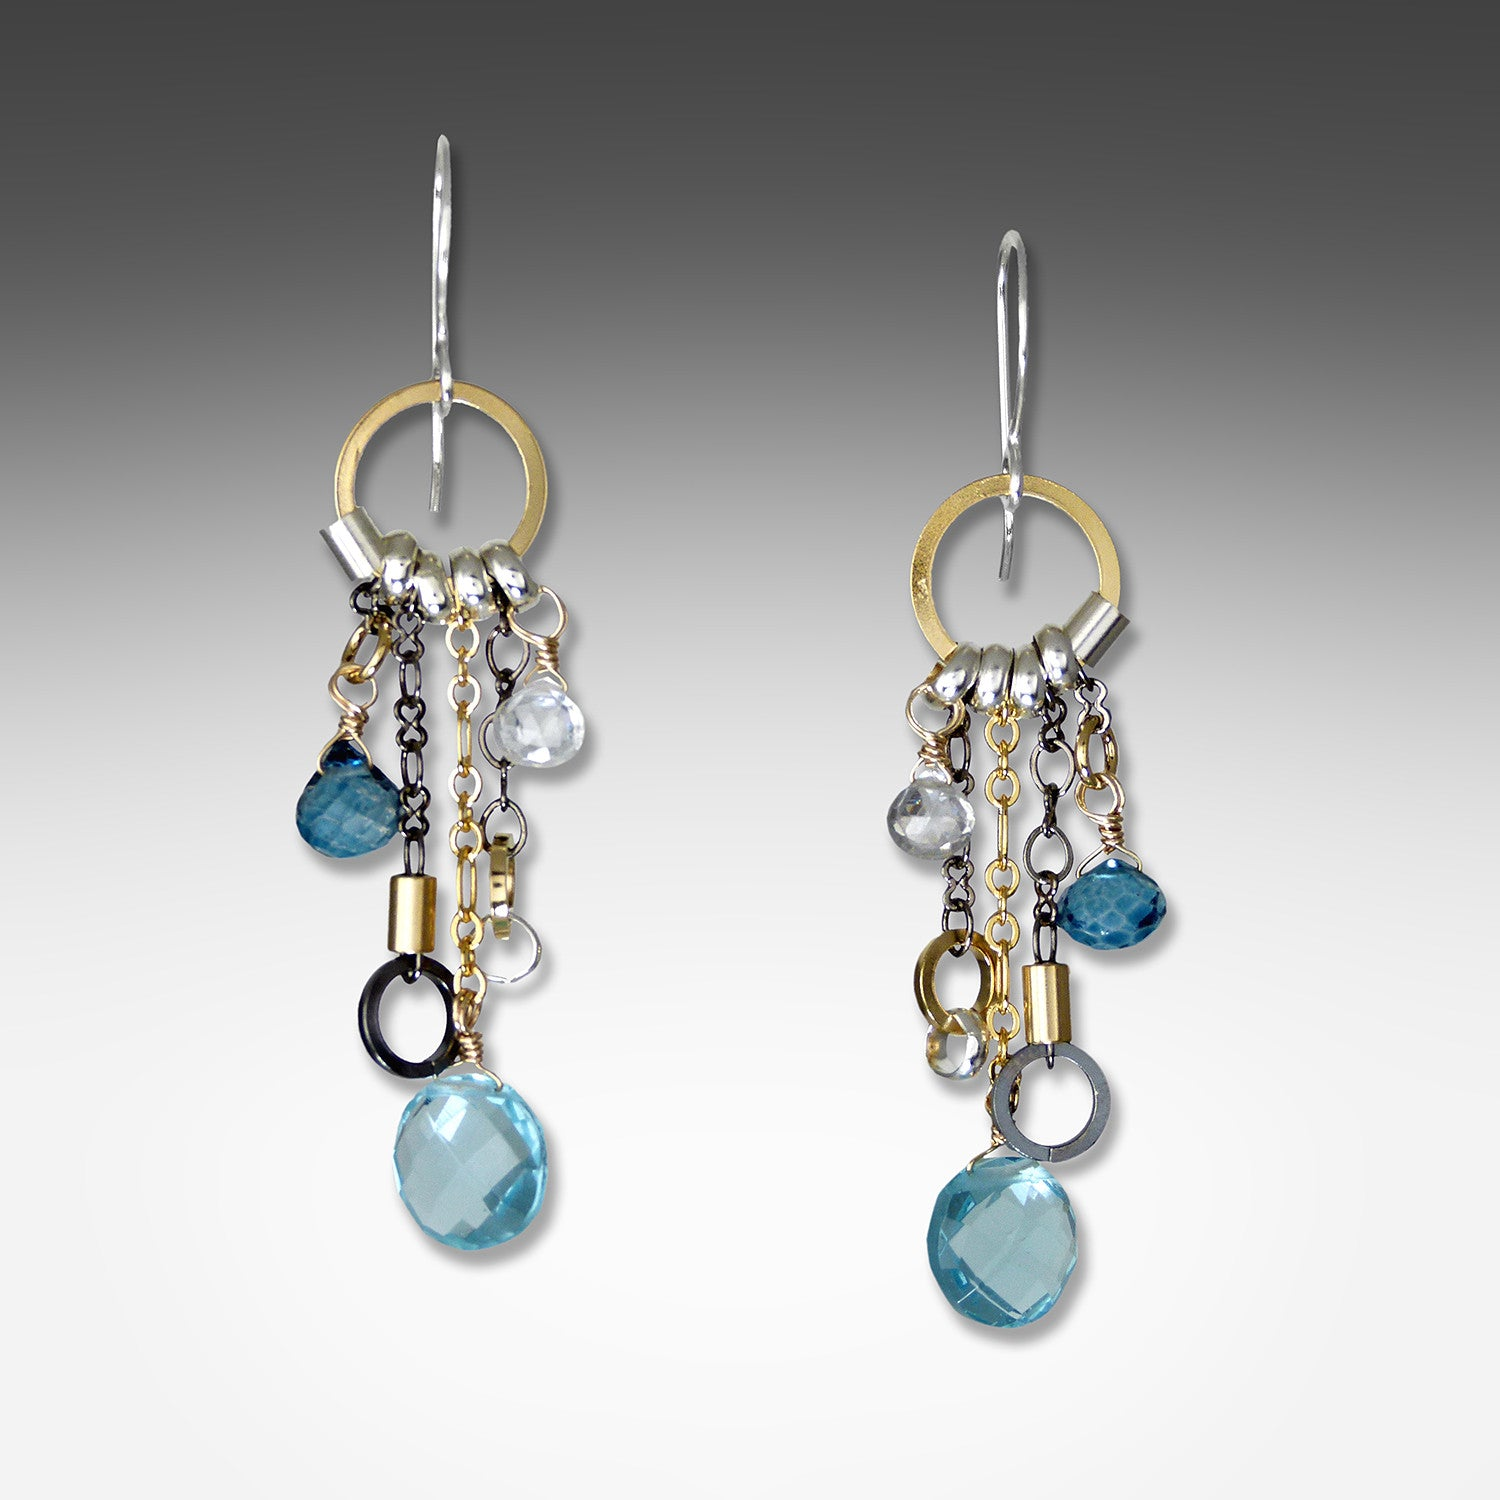 earrings jewellery item dangle blue topaz jewelry silver sterling kloiber jewelers